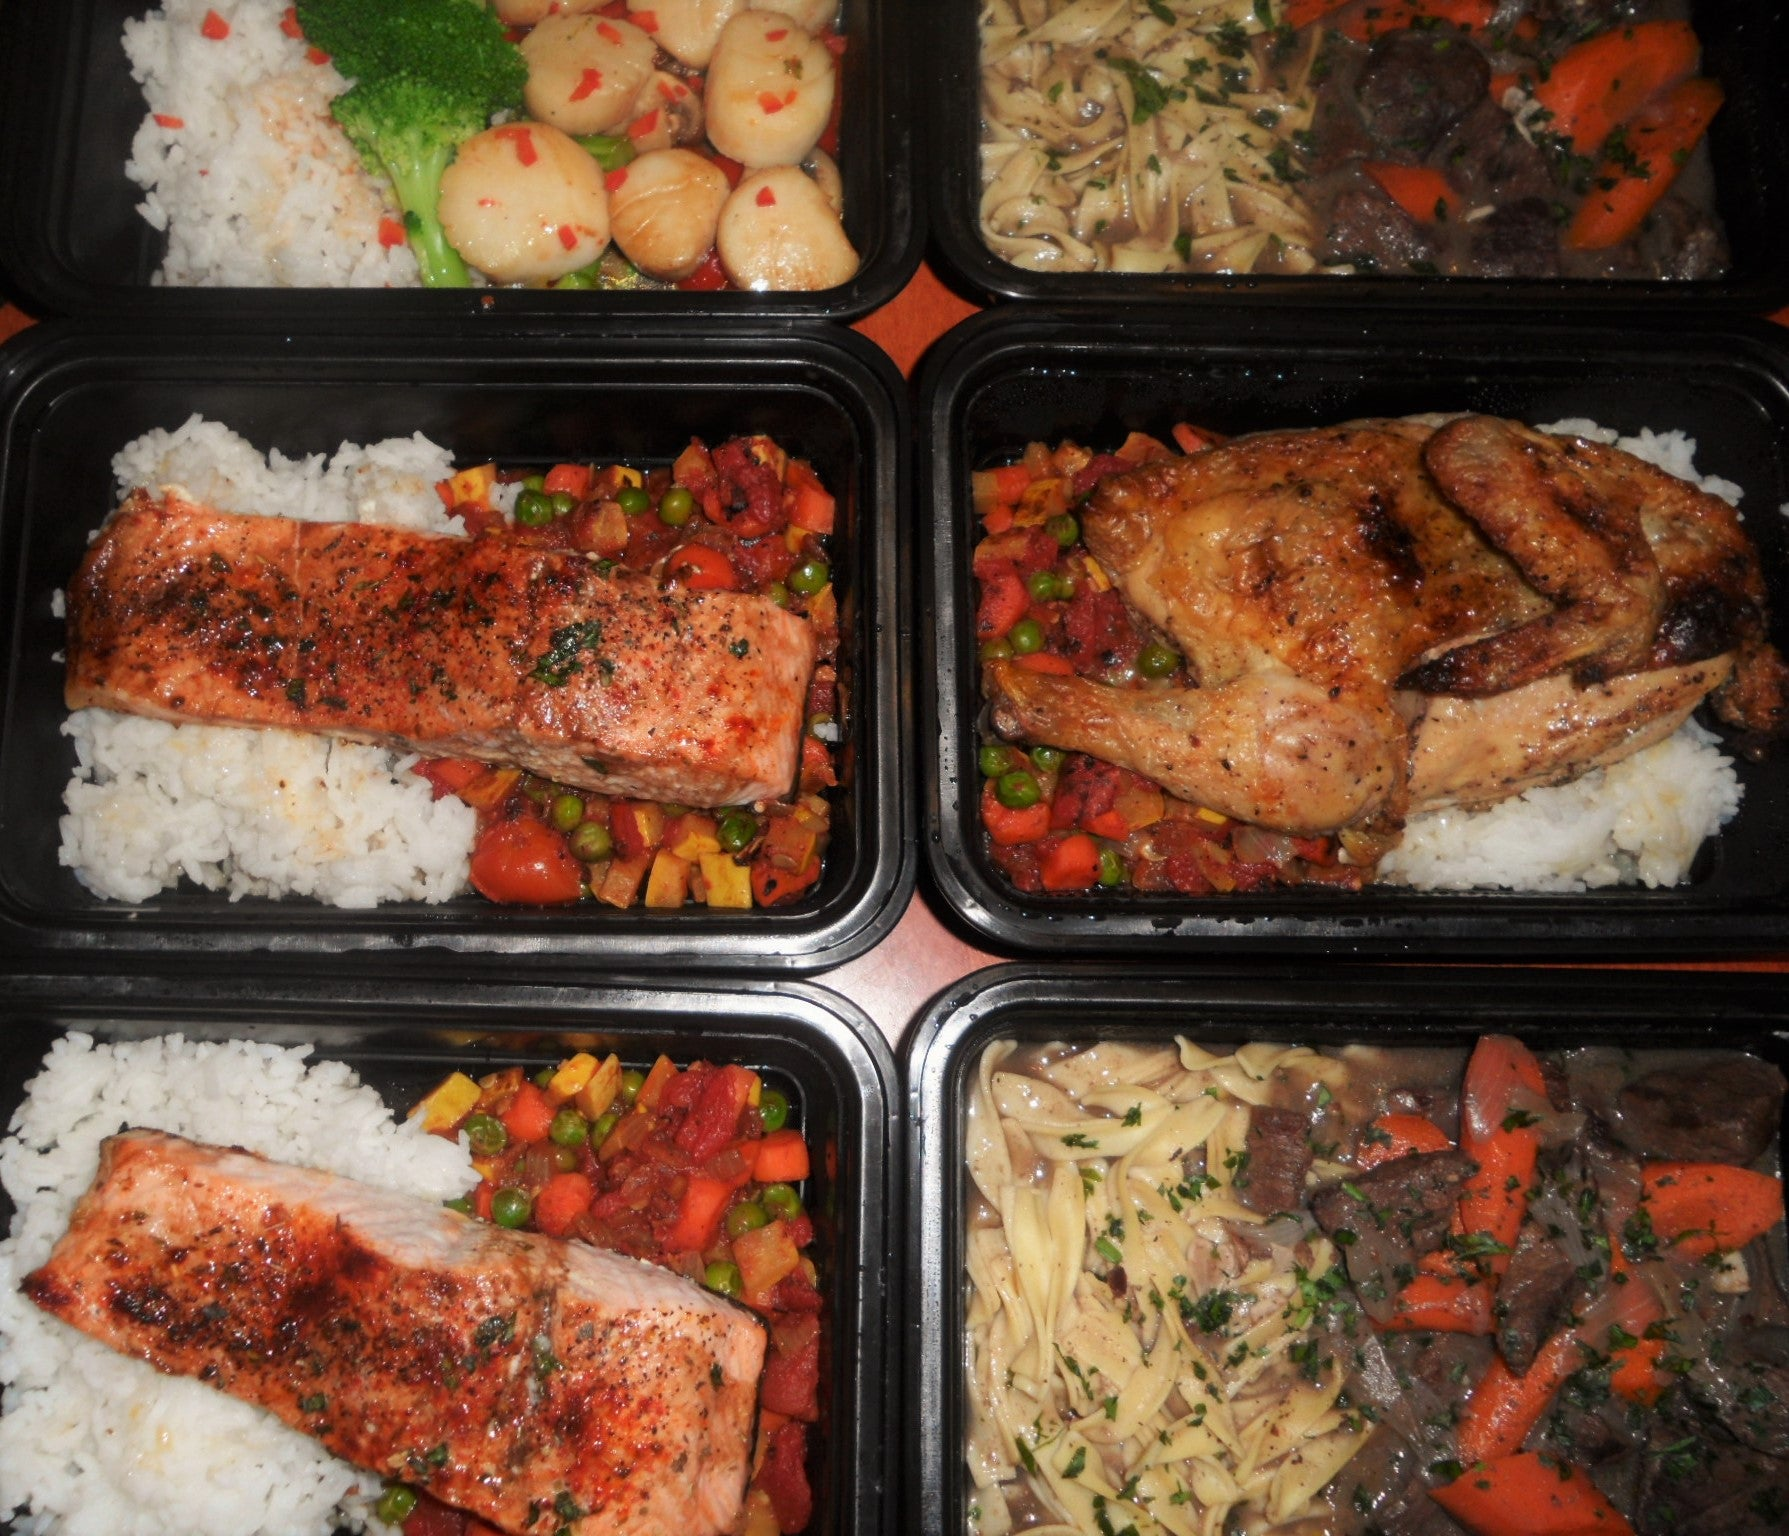 Healthy cooked meals delivered in Northern Virginia.